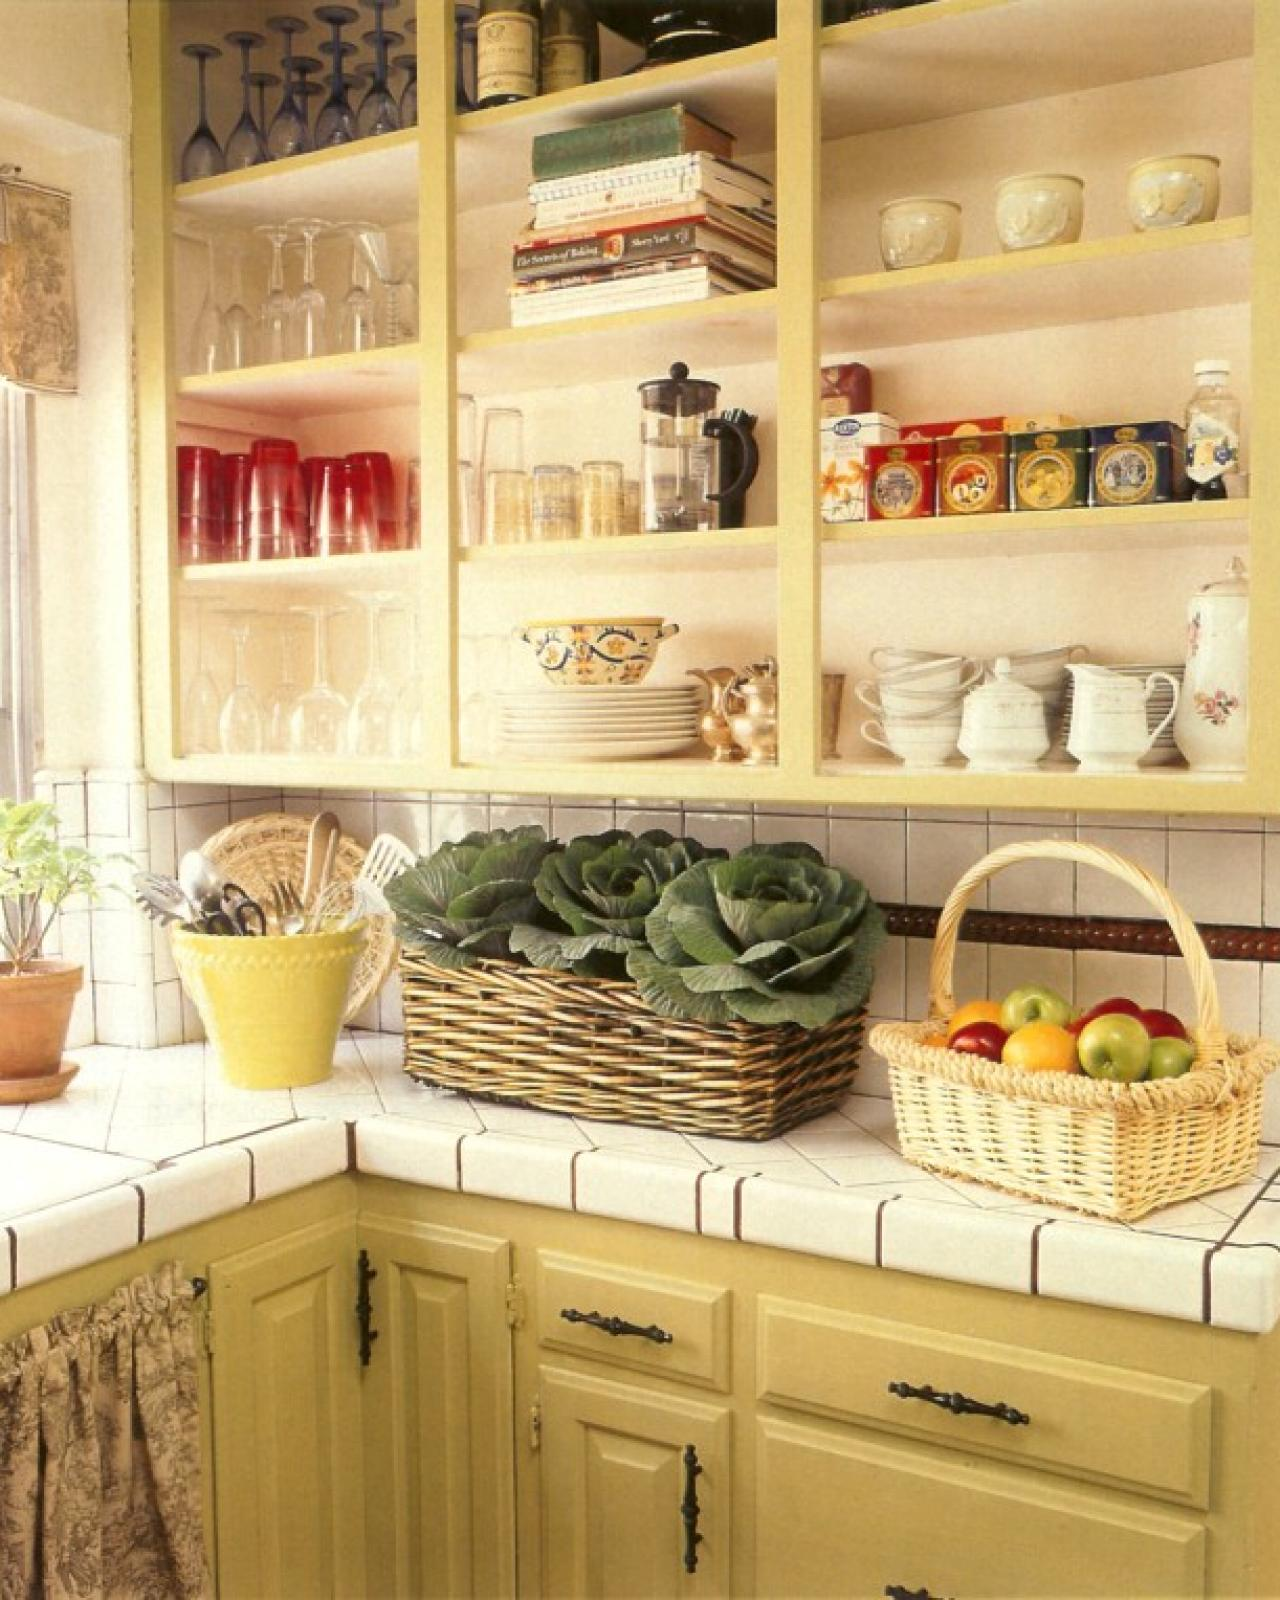 Made By Megg Kitchen Paint: 25 Tips For Painting Kitchen Cabinets